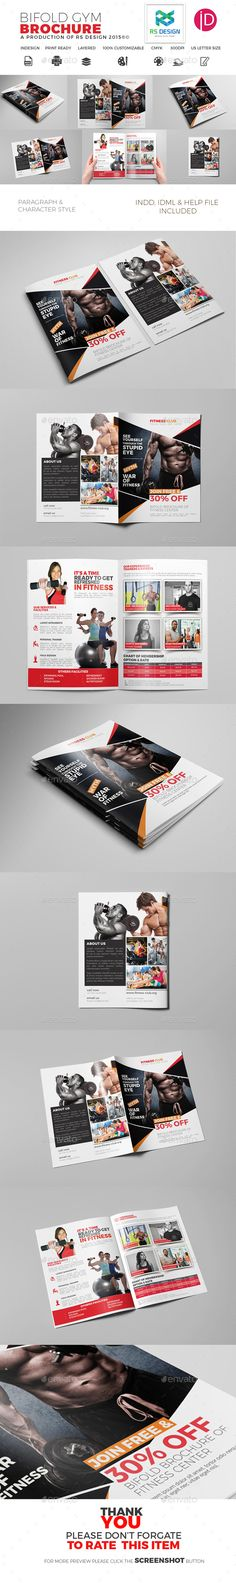 1000+ images about Gym Brochure on Pinterest Gym, Templates and - Gym Brochure Templates